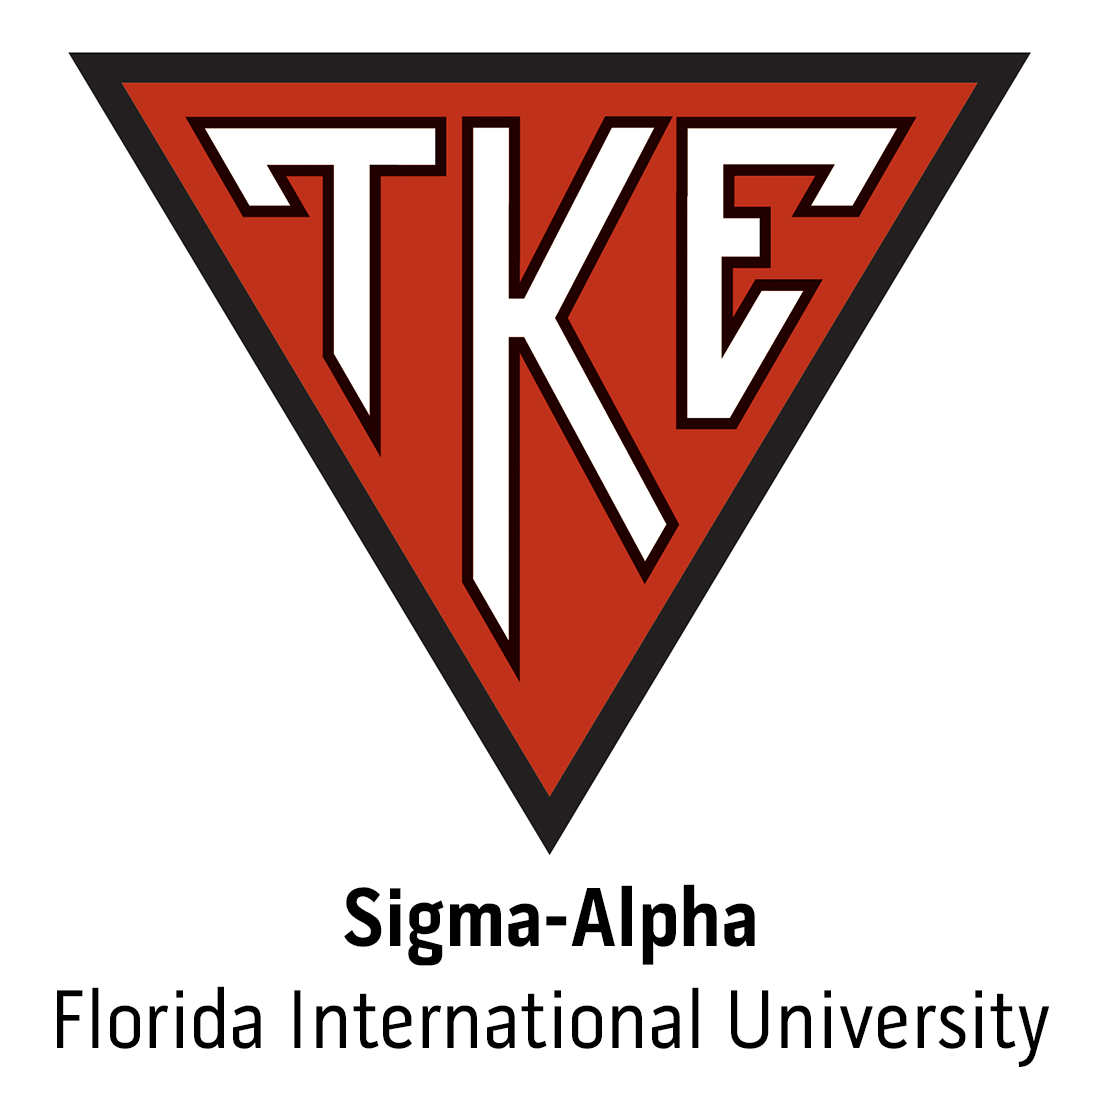 Sigma-Alpha Chapter at Florida International University